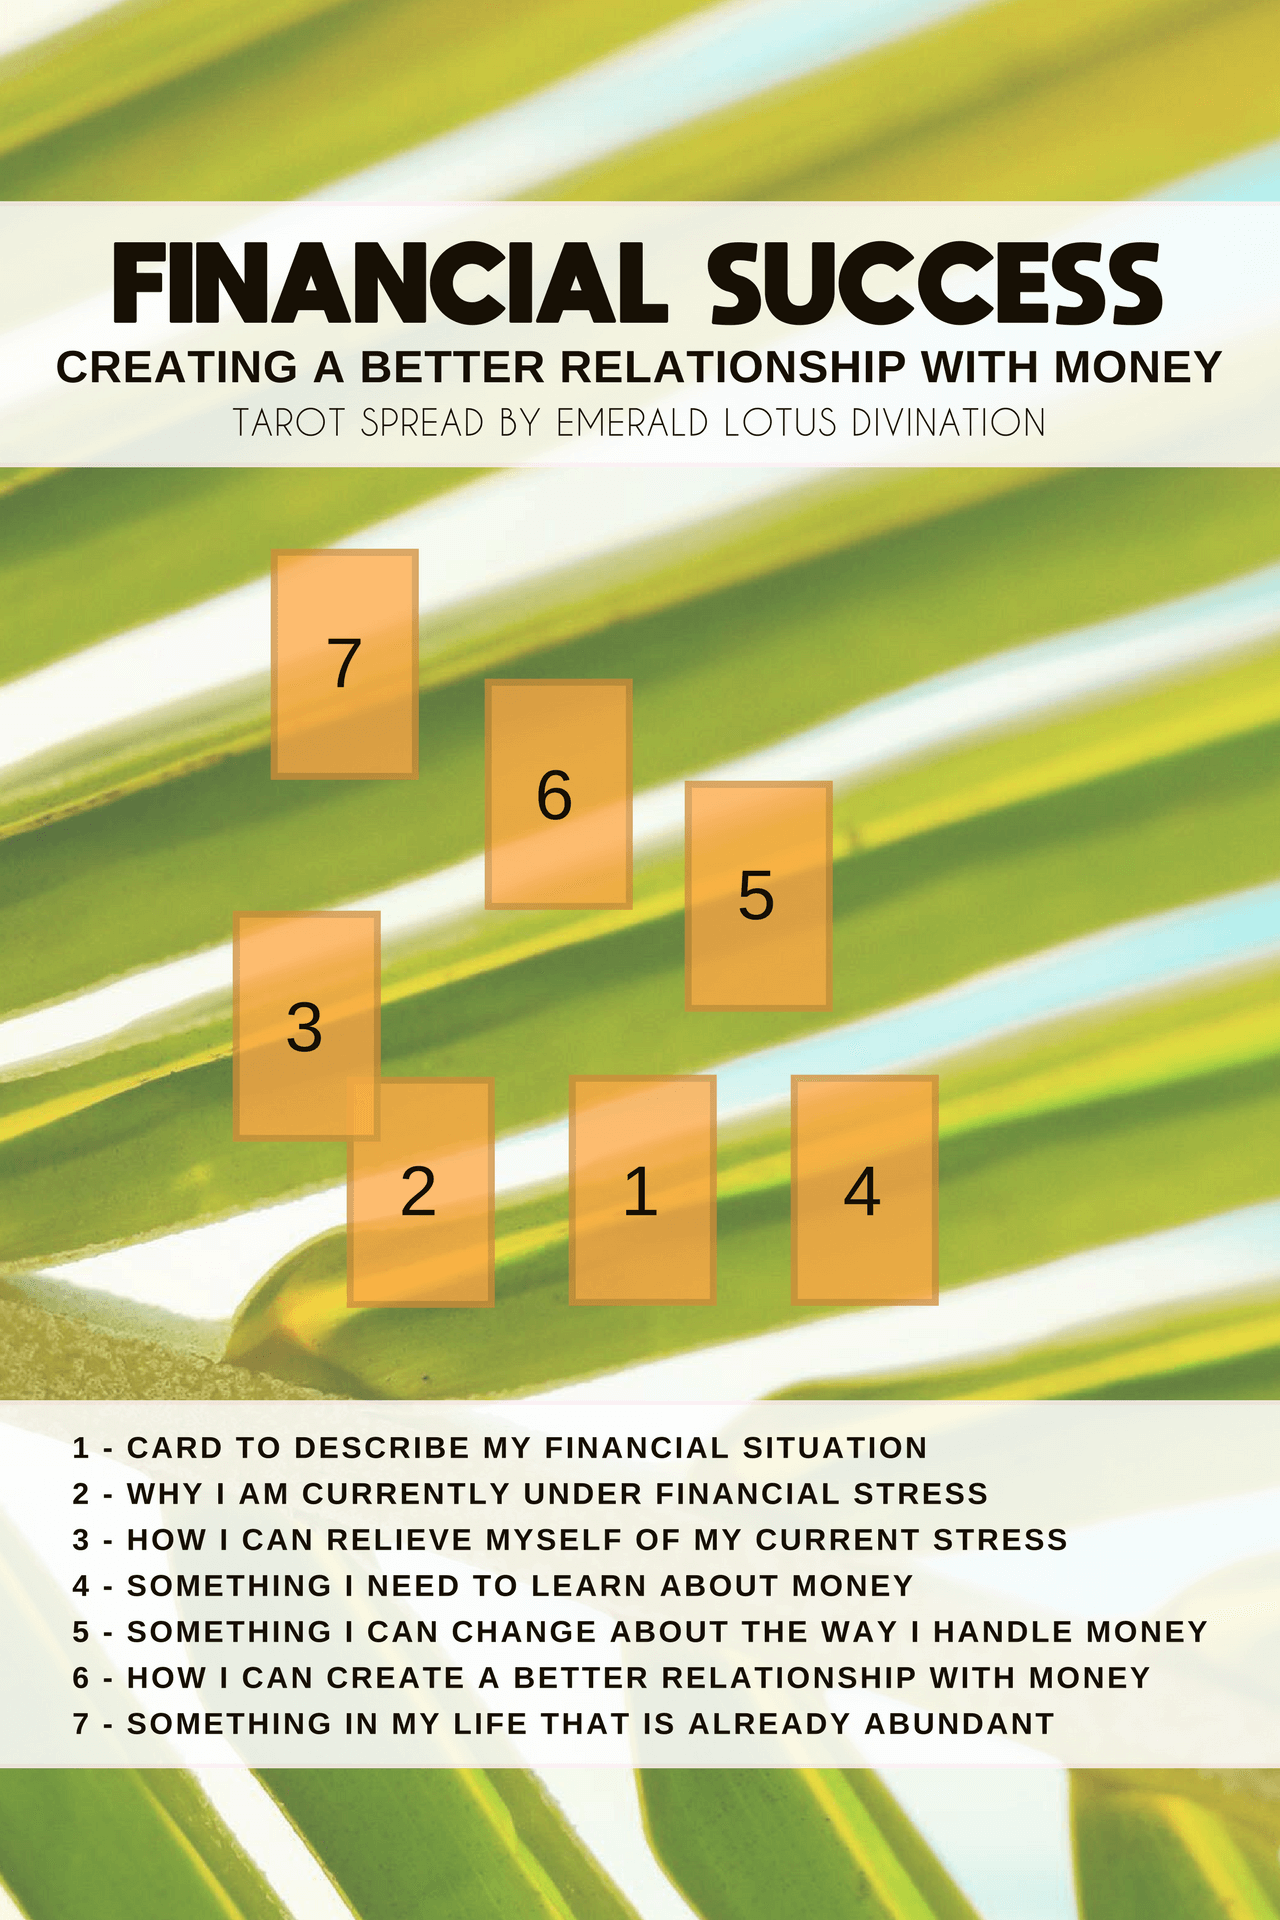 financial-success_-creating-a-better-relationship-with-money-tarot-spread-2.png